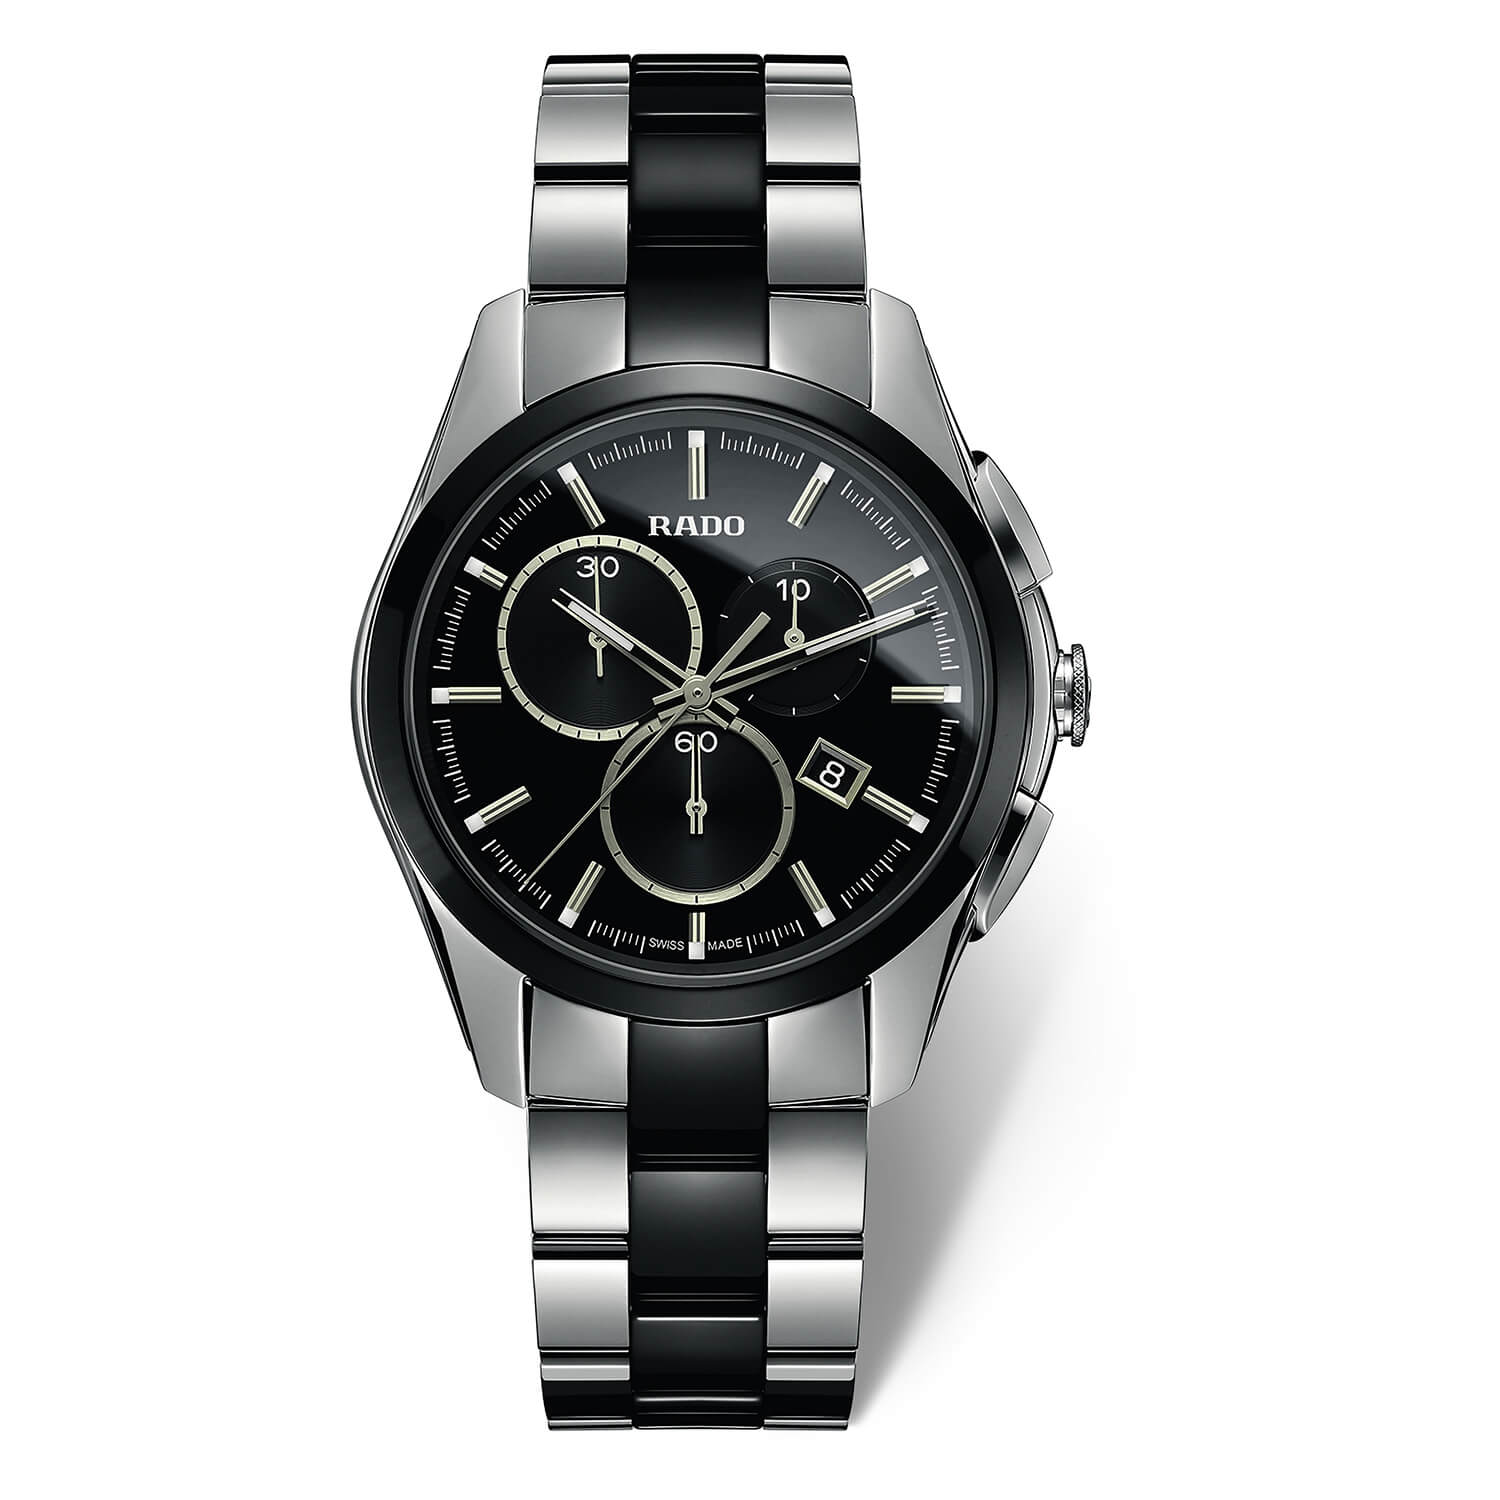 Rado Hyperchrome chronograph men's black and stainless steel bracelet watch